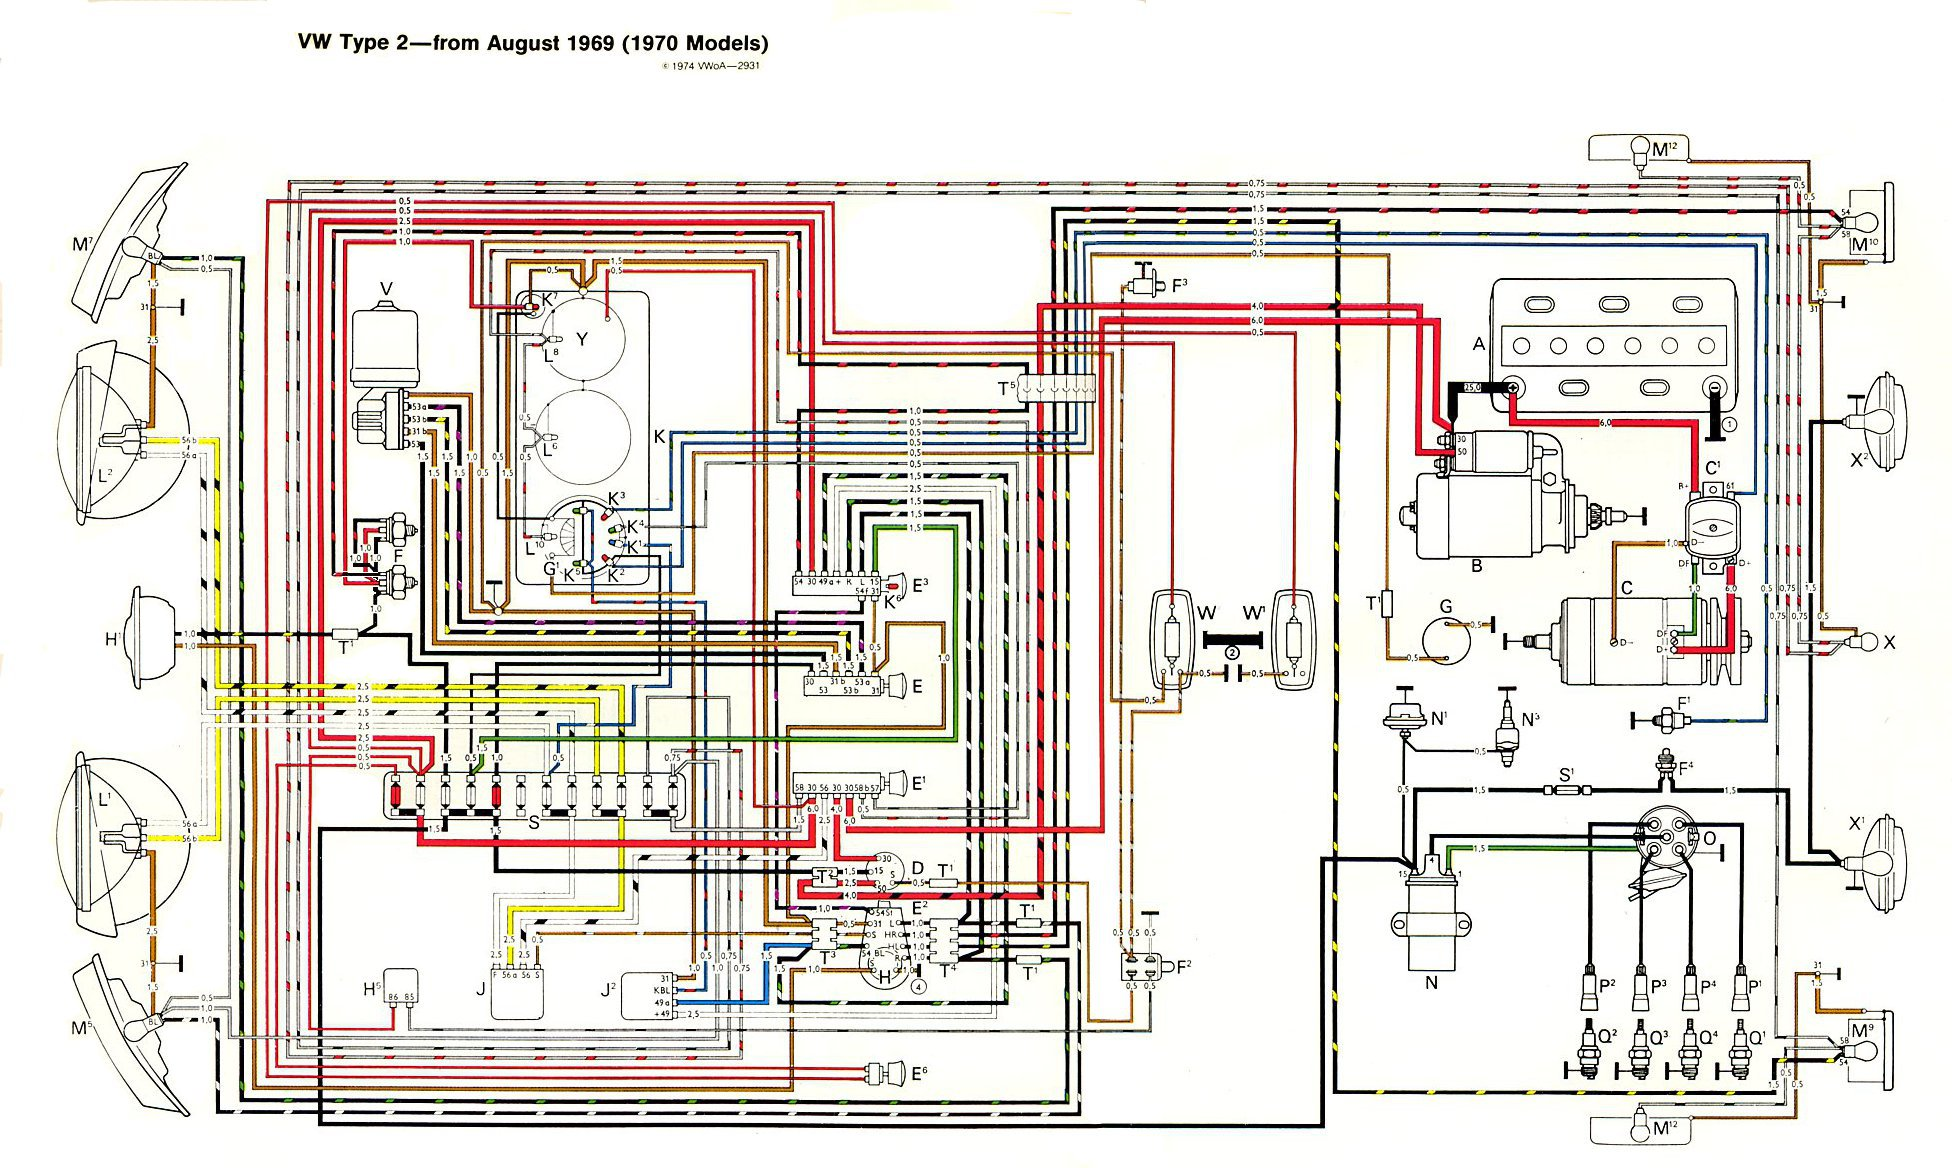 volkswagen caddy wiring diagram lewis dot for as thesamba type 2 diagrams